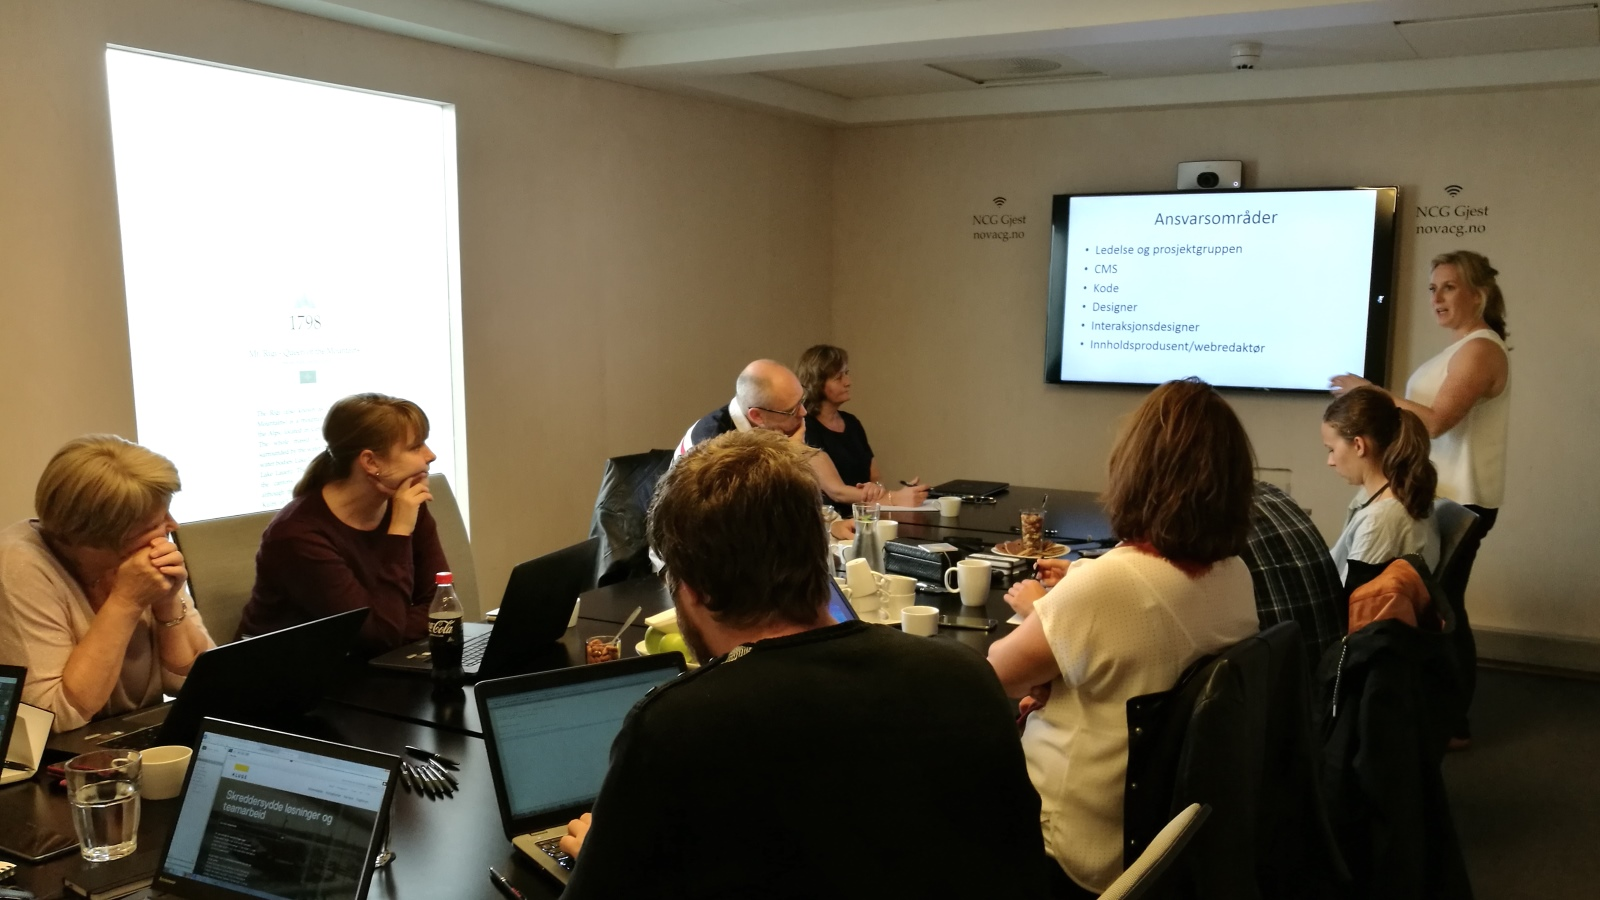 Episerver custom editor training at Epinova